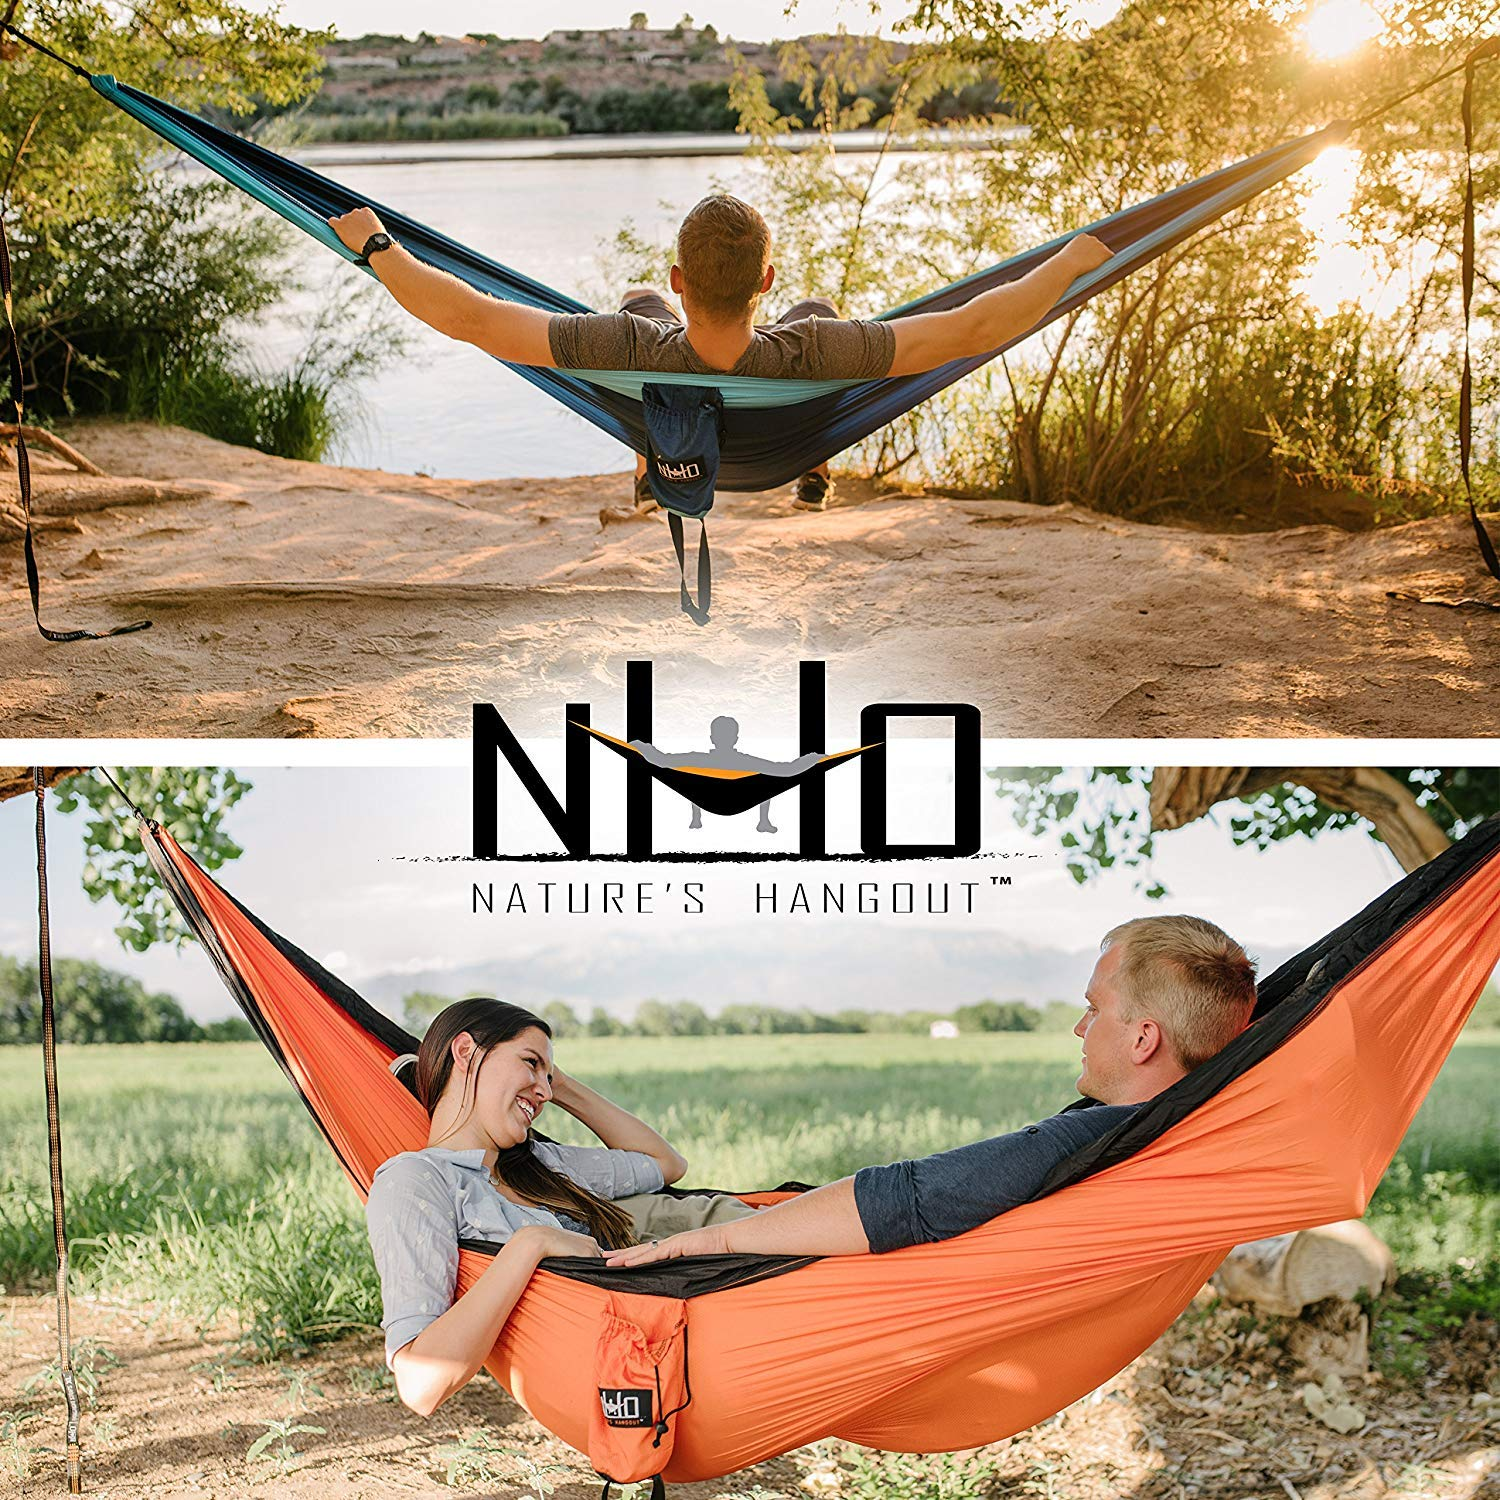 The HangEasy Portable Camping Hammock